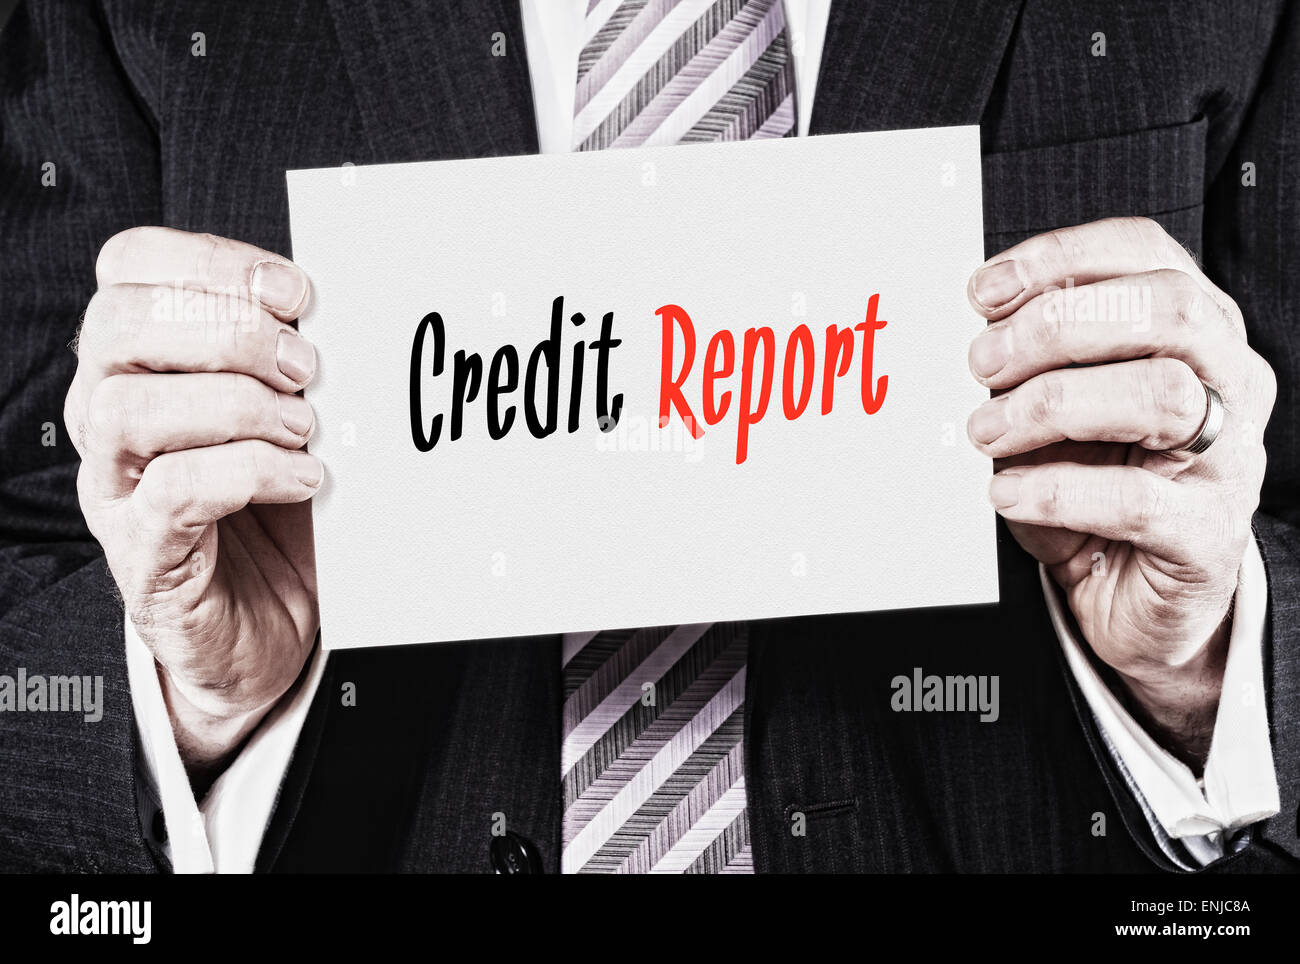 A businessman holding a business card with the words,  Credit Report, written on it. - Stock Image